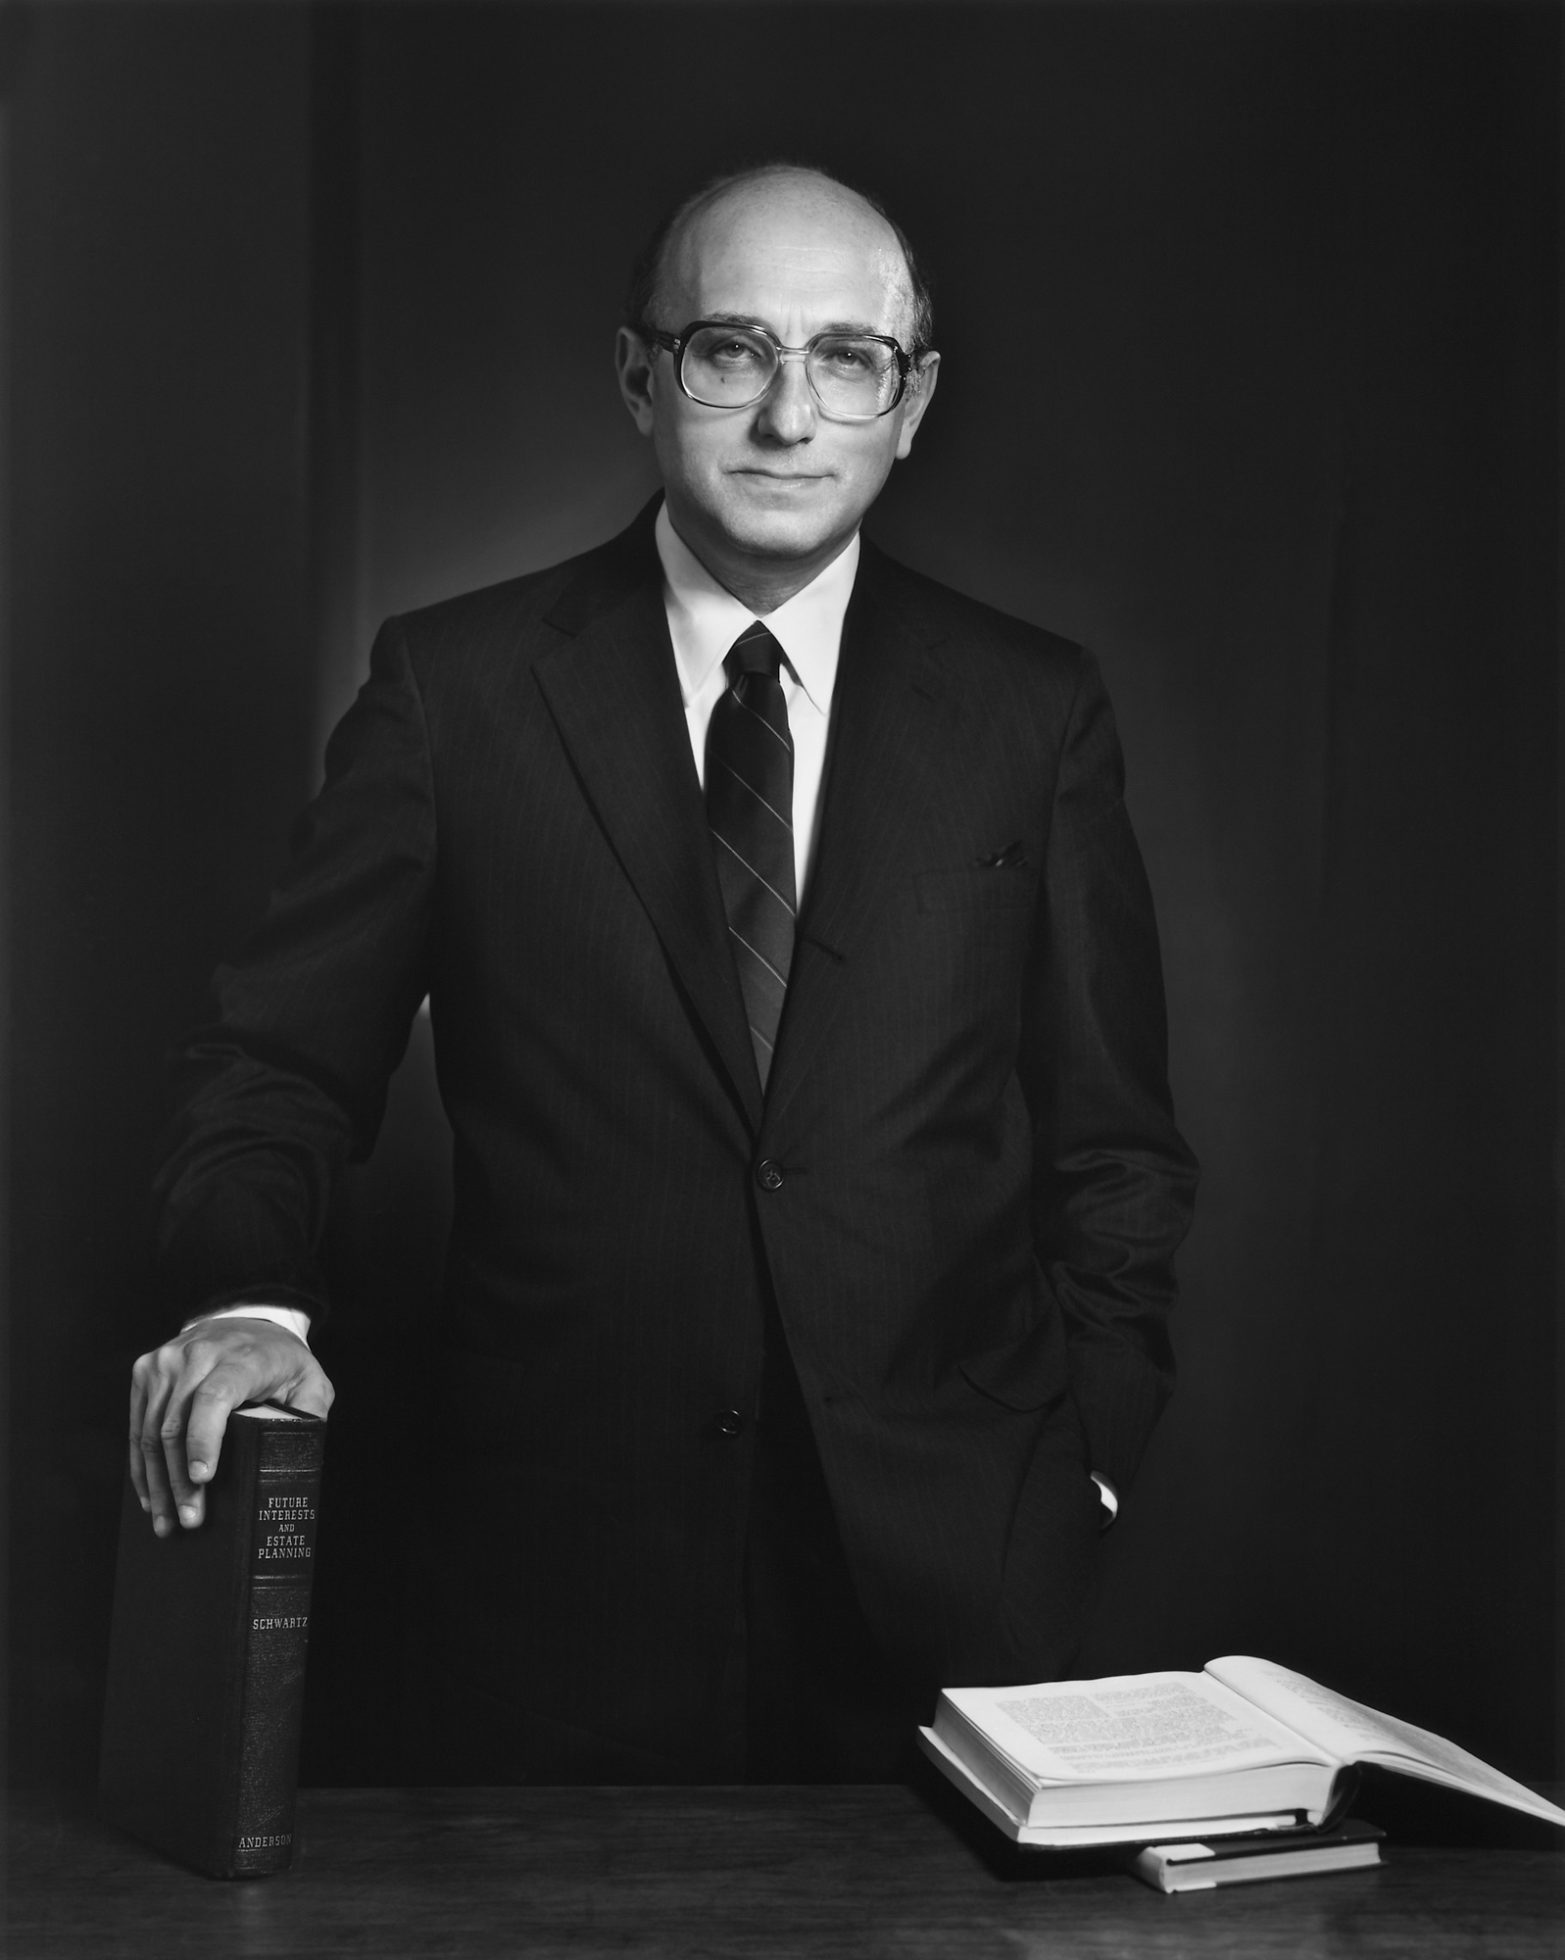 William Schwartz